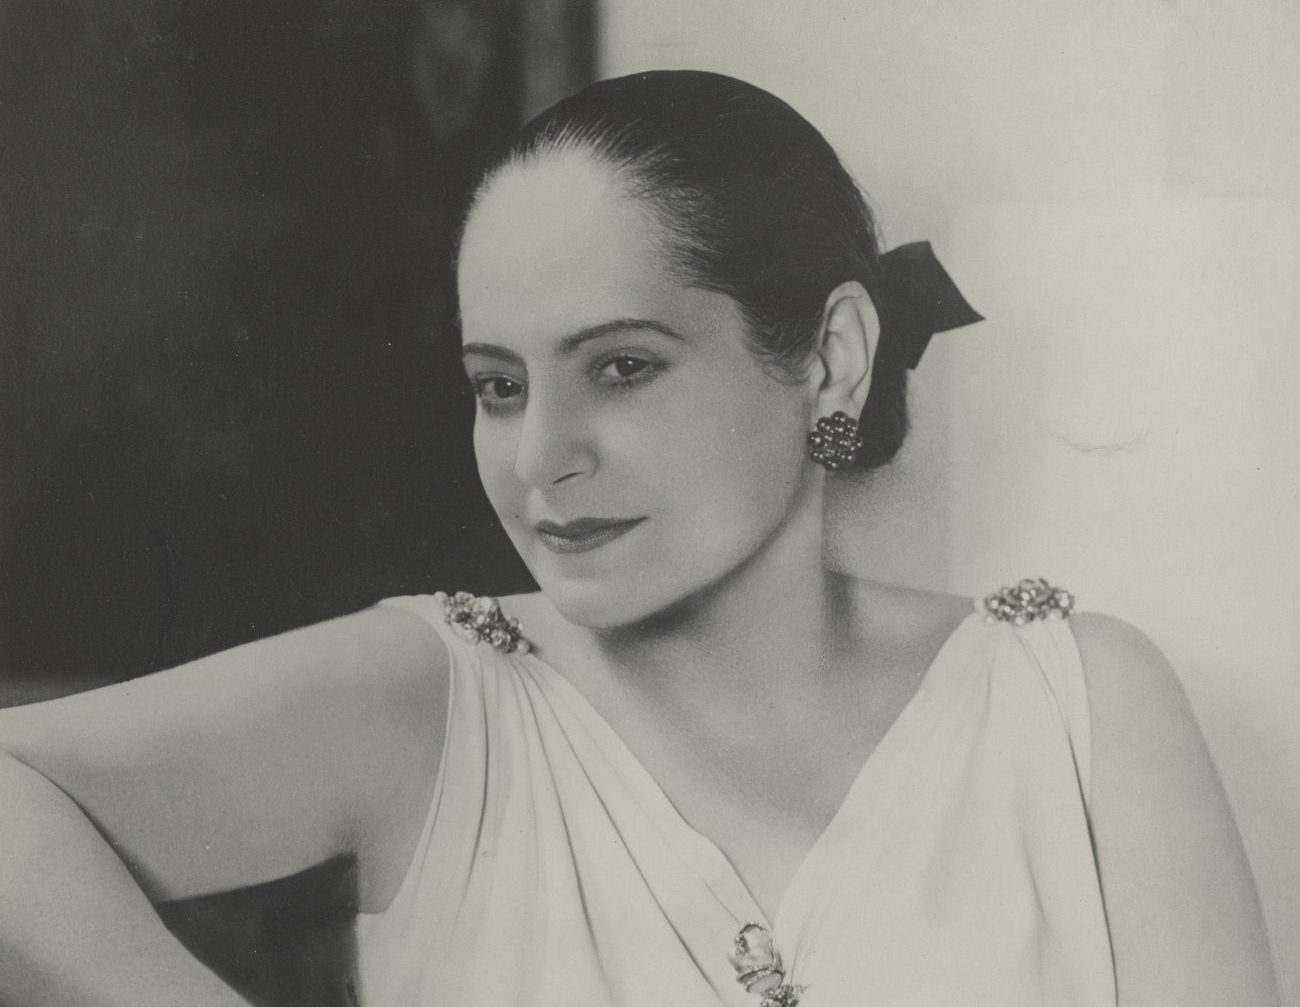 Helena Rubinstein, Helena Rubinstein in Schiaprelli Kleid © Archiv_Archives Helena Rubinstein, Paris (1) Art On Screen - News - [AOS] Magazine